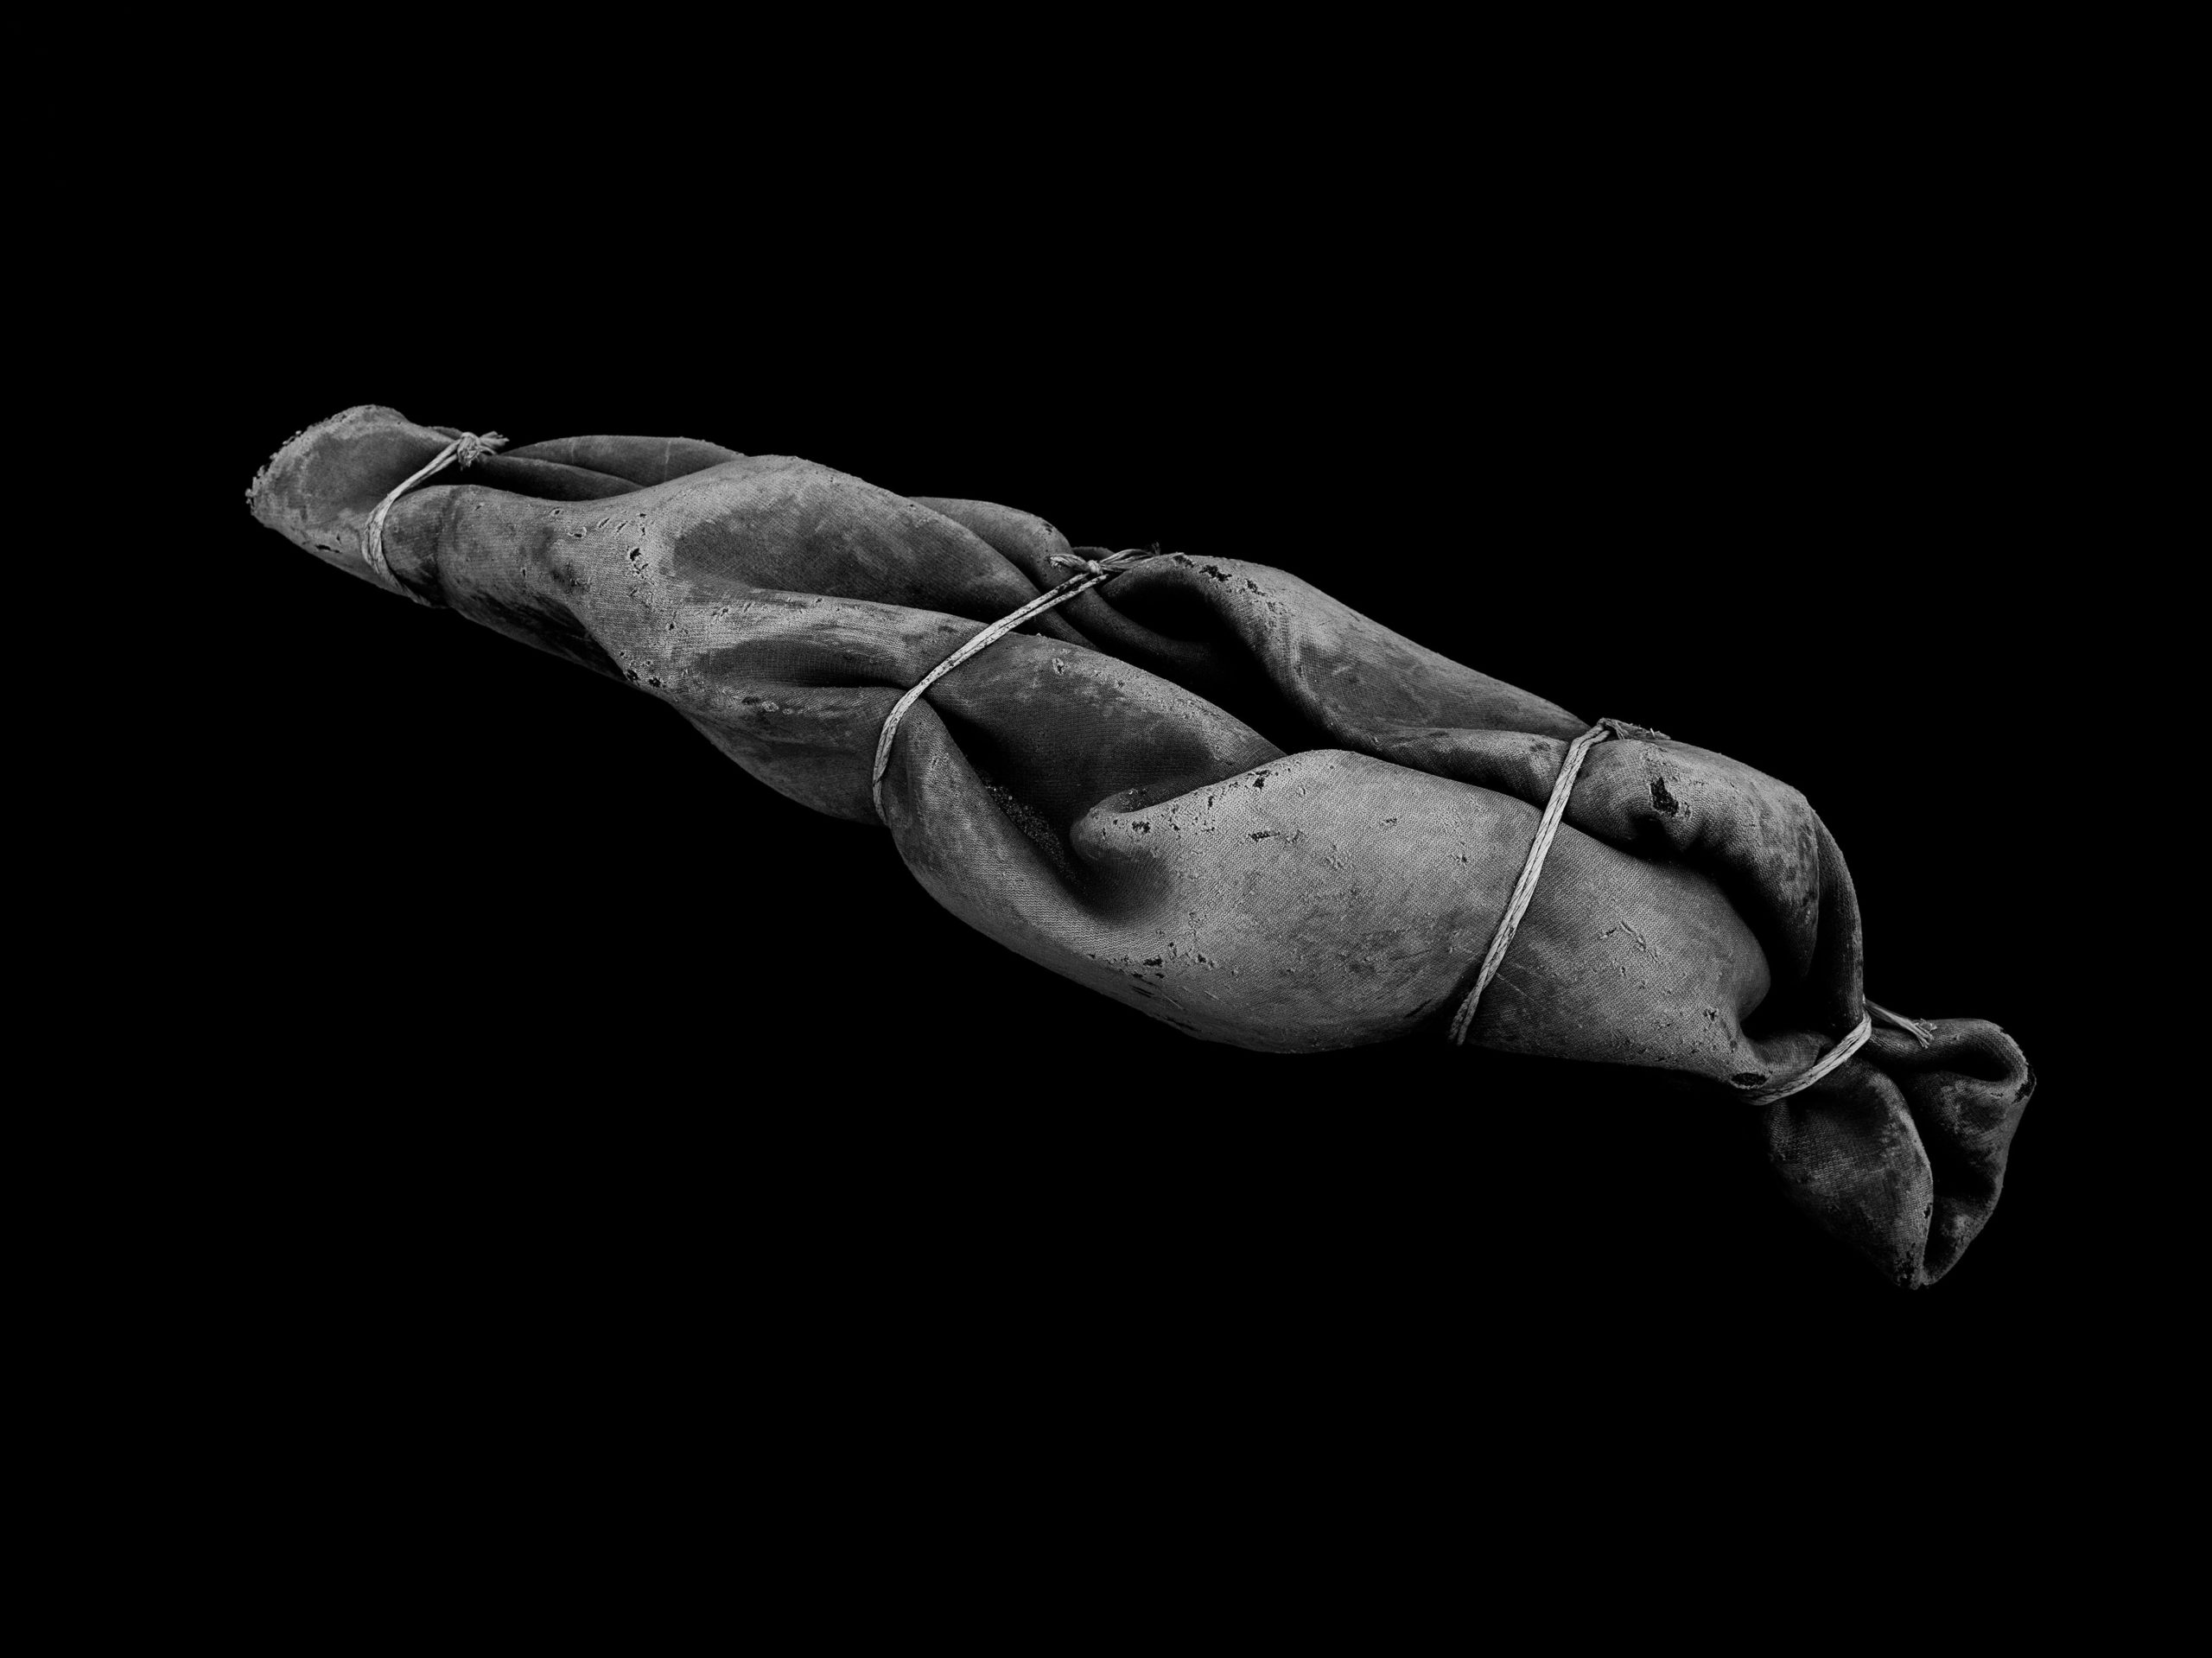 Juxtaposed against a solid black background is a heavy grey blanket, tied in several places as if it is wrapped around a human body that has been dumped in the depths of the ocean.